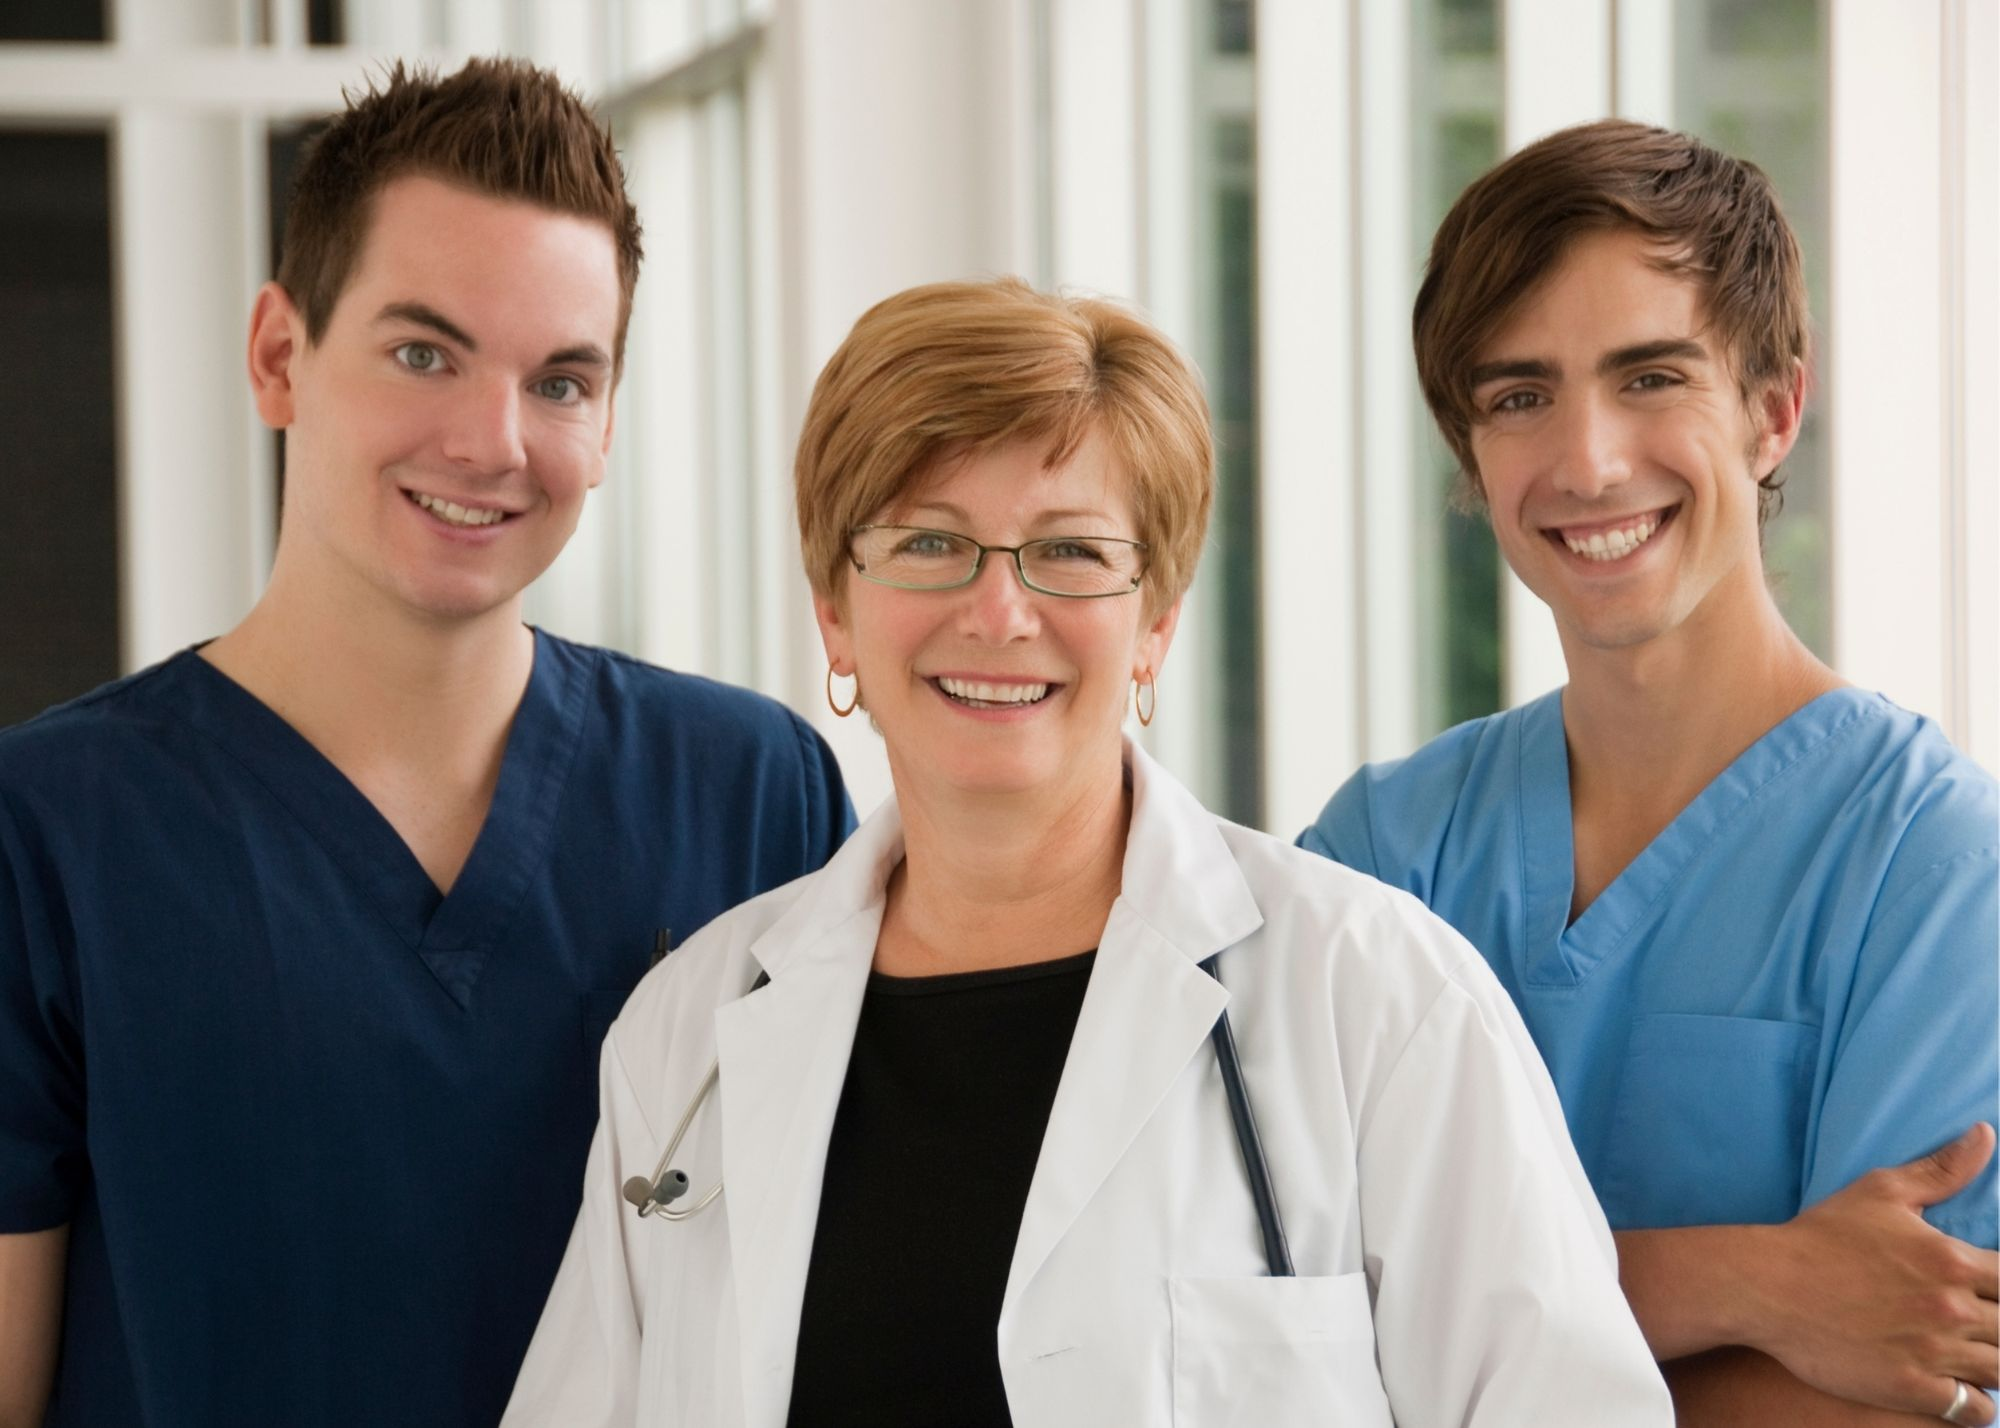 Credentialing of Medical Professionals